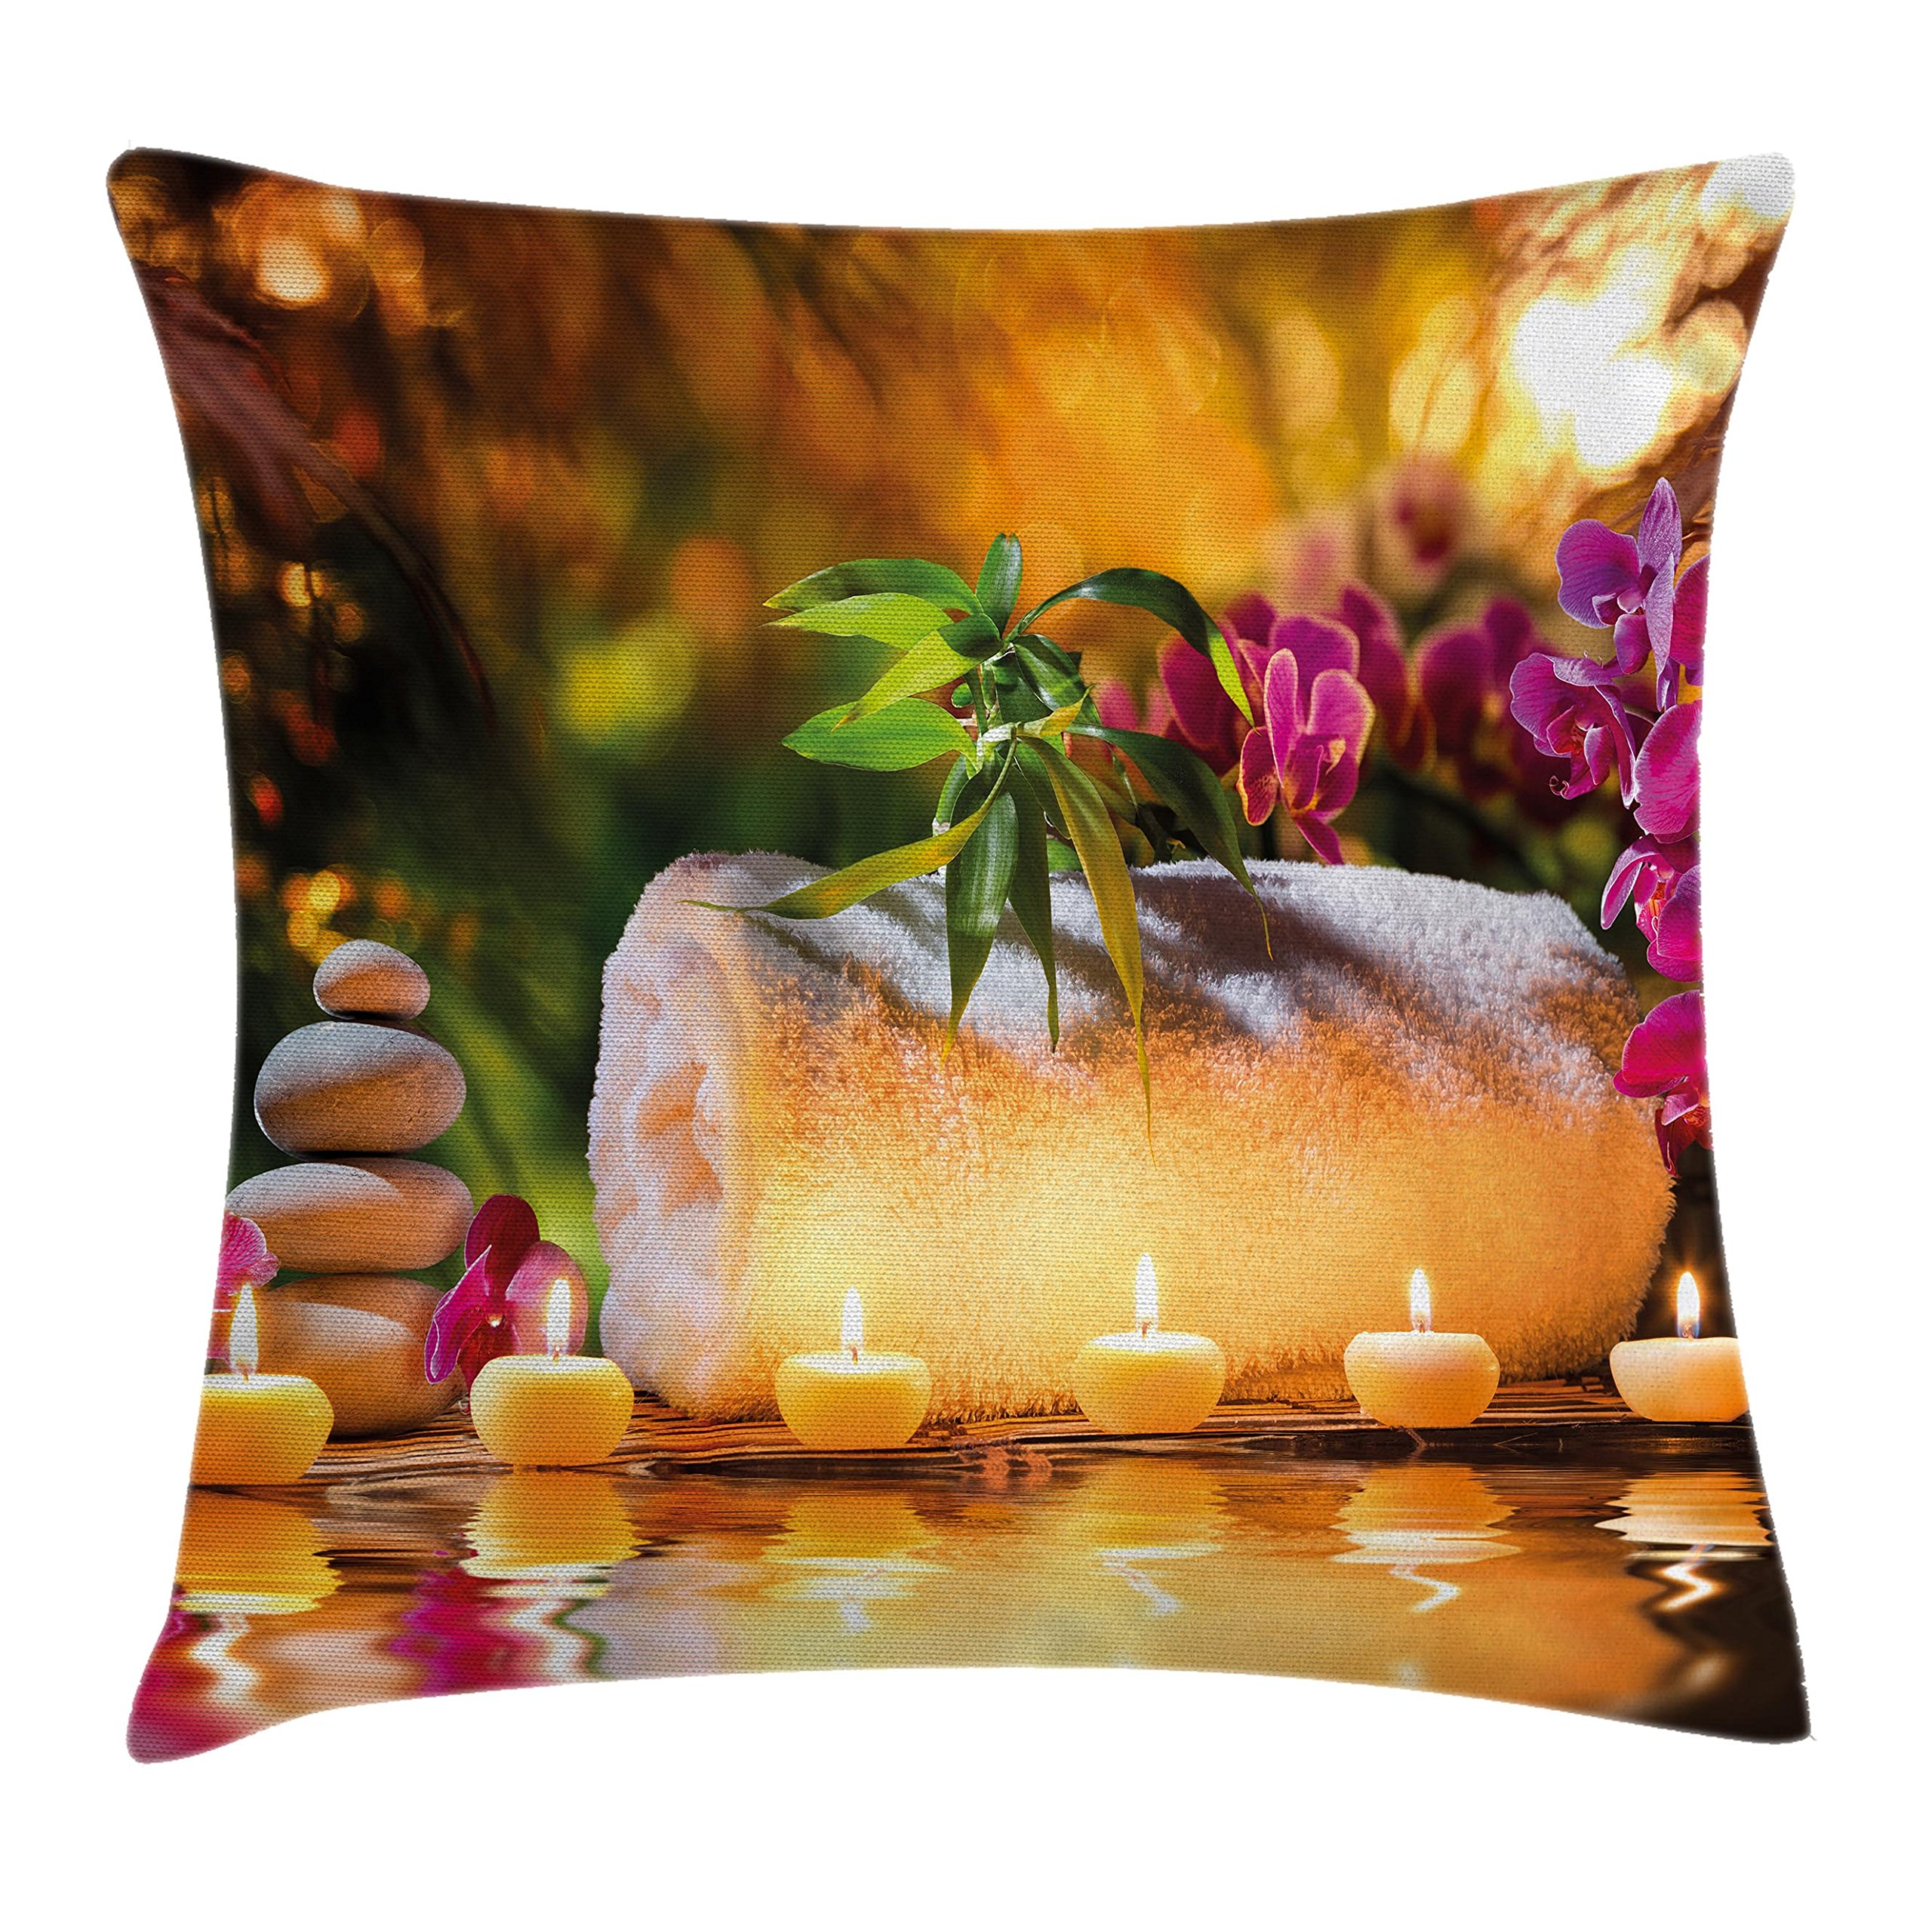 Ambesonne Spa Decor Throw Pillow Cushion Cover, Asian Classic Spa Joy in The Garden with Romantic Candles and Orchids, Decorative Square Accent Pillow Case, 16 X 16 inches, Purple White and Green